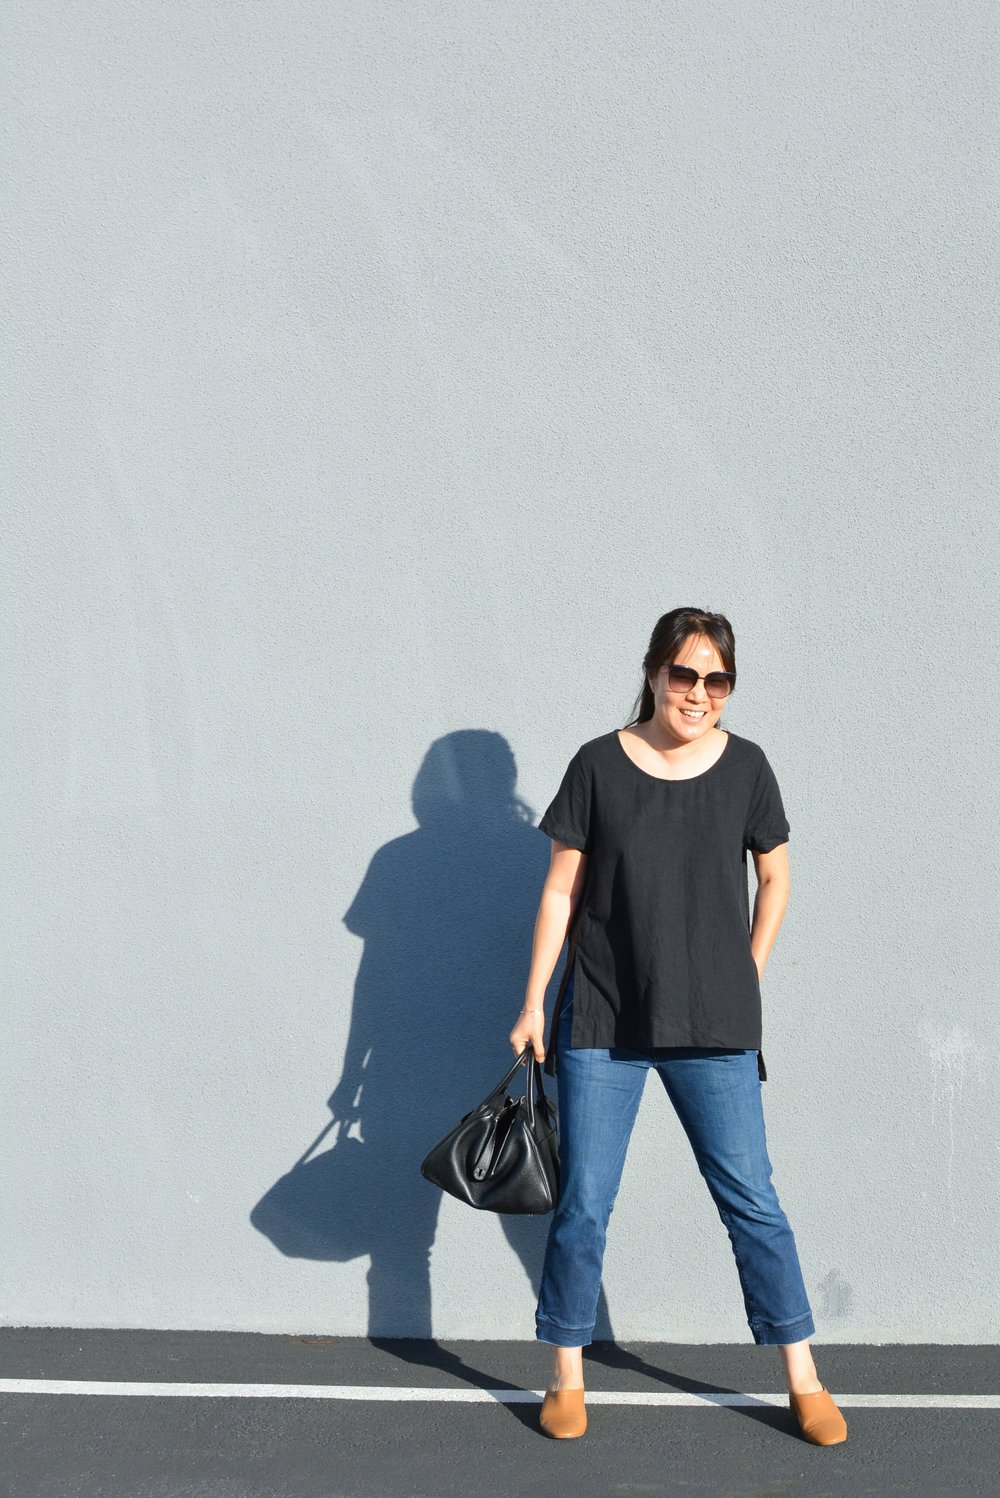 Jamie and the Jones Review The Stable Basic Split Tee Top  (2 of 6)-min.jpg